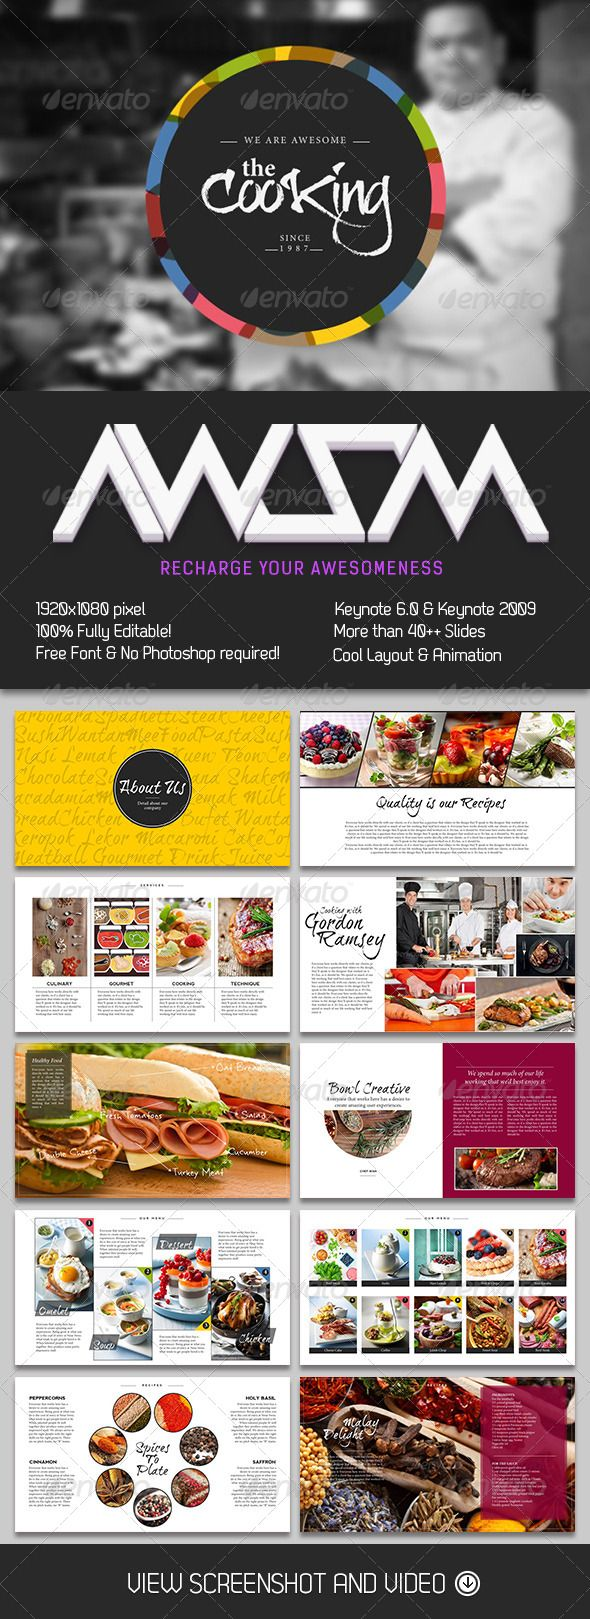 Presentation Templates - Cooking Master Keynote Template | GraphicRiver, presentation, design,